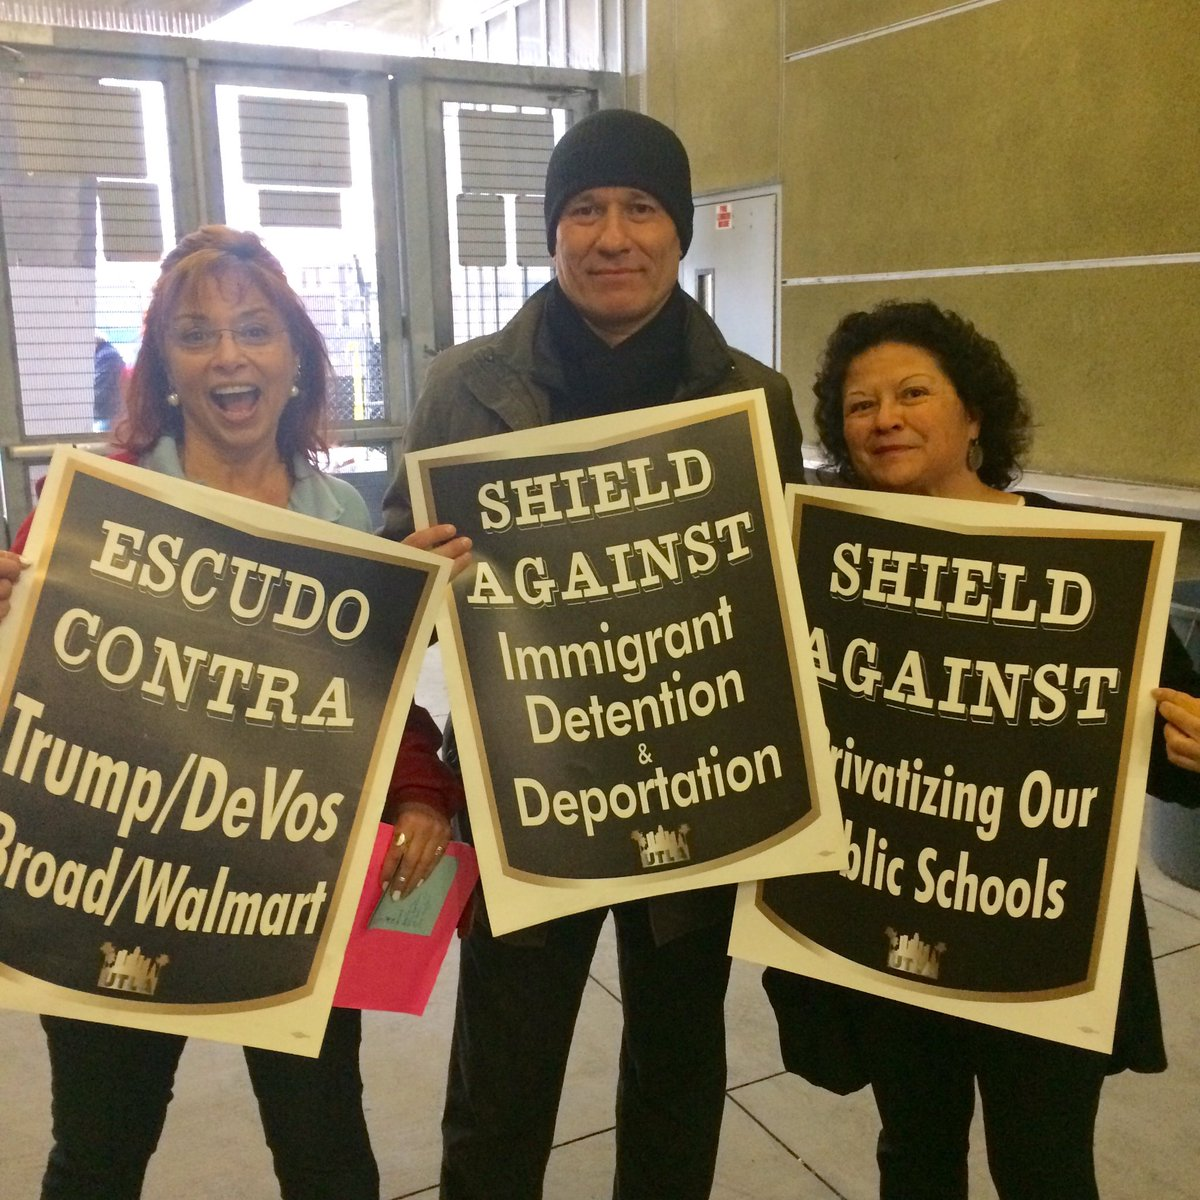 "Image result for Shield Against Immigrant Detention"" and ""Shield Against Trump/DeVos/Broad/Walmart."" T"